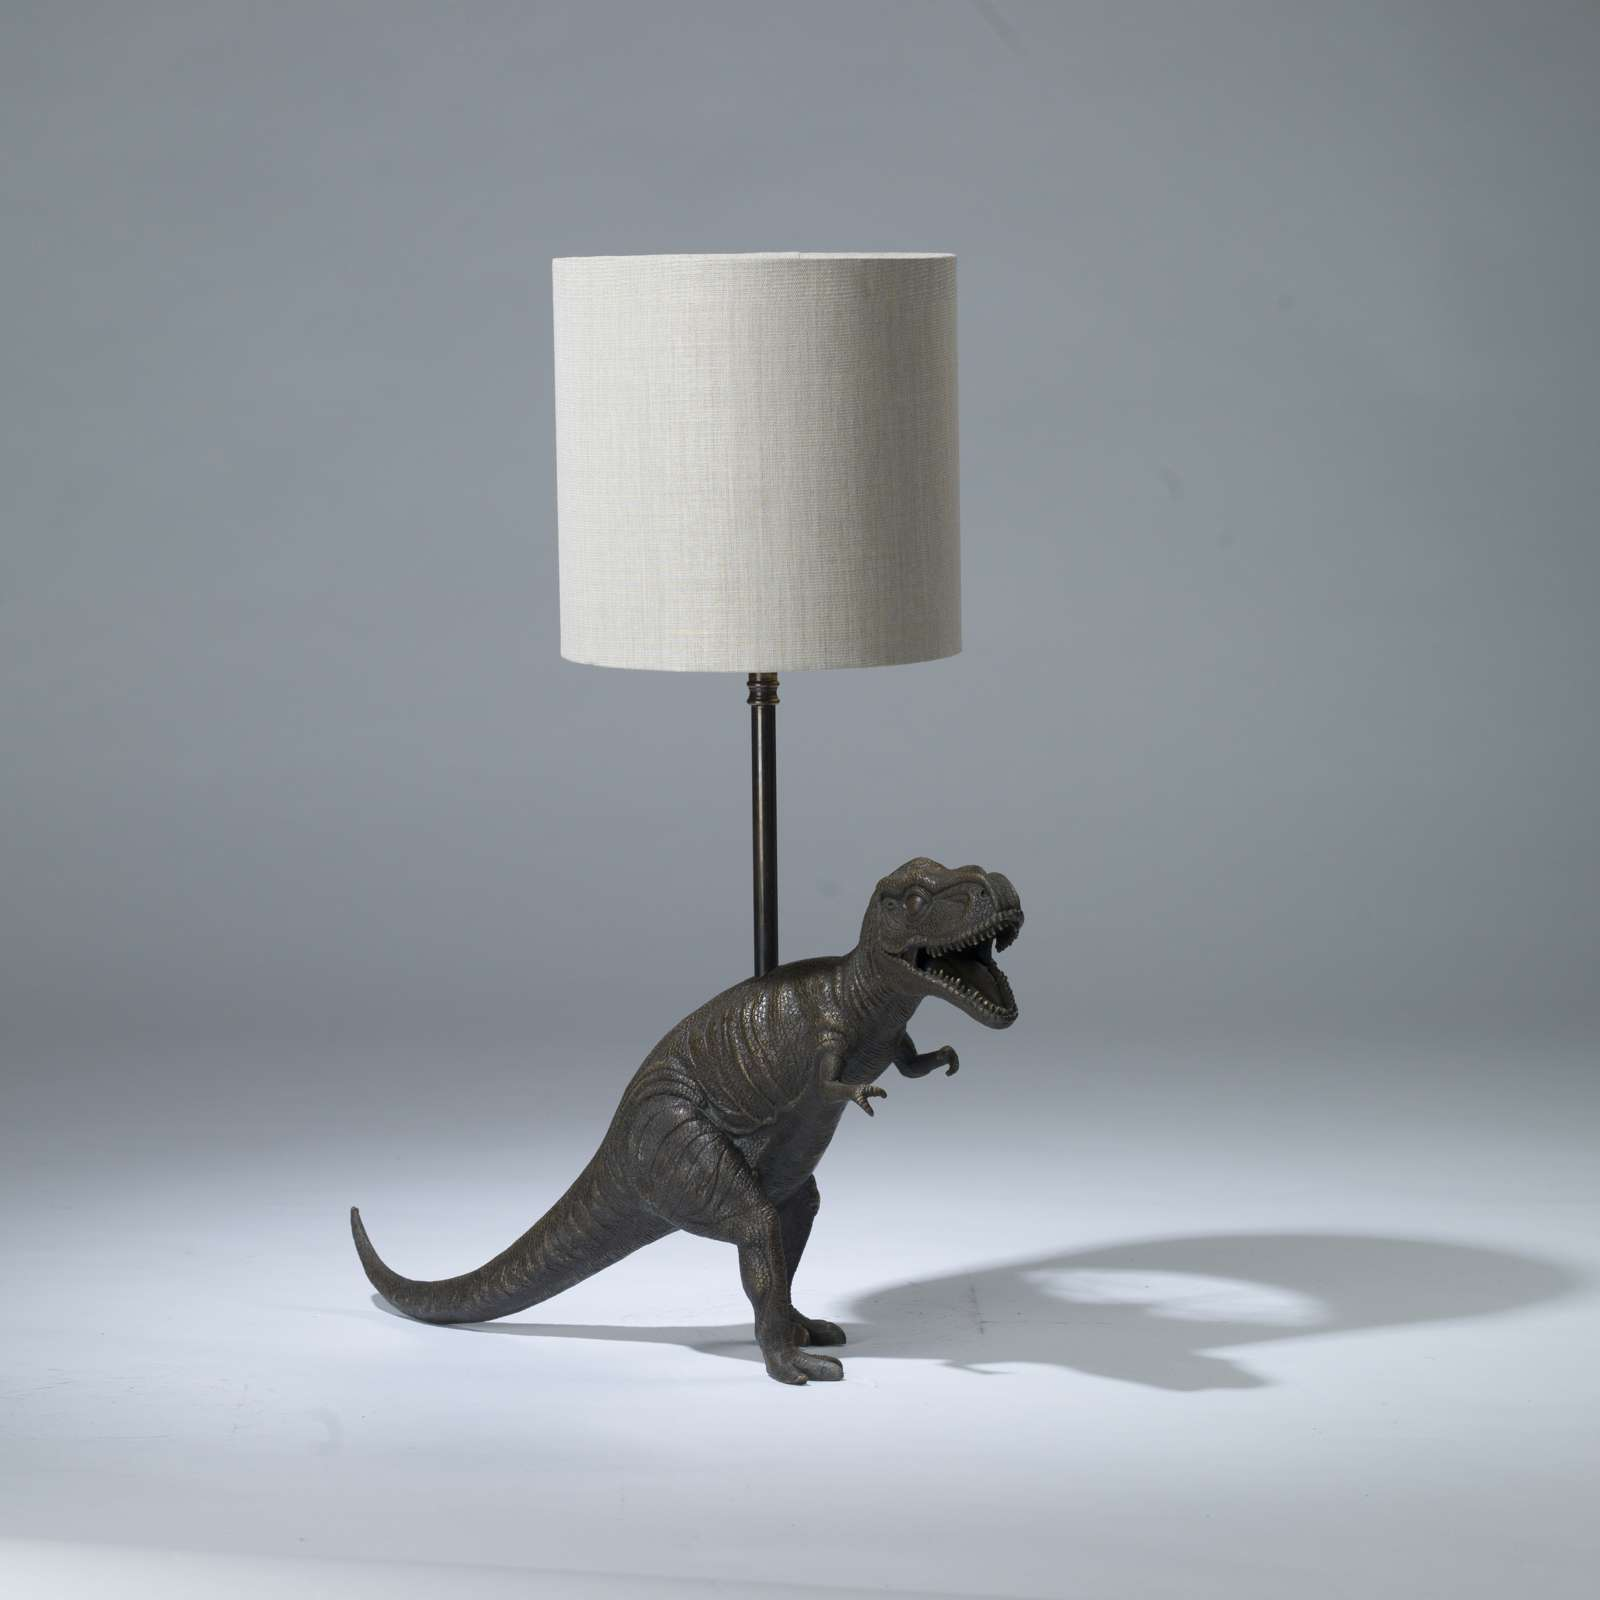 Small Decorative Table Lamps